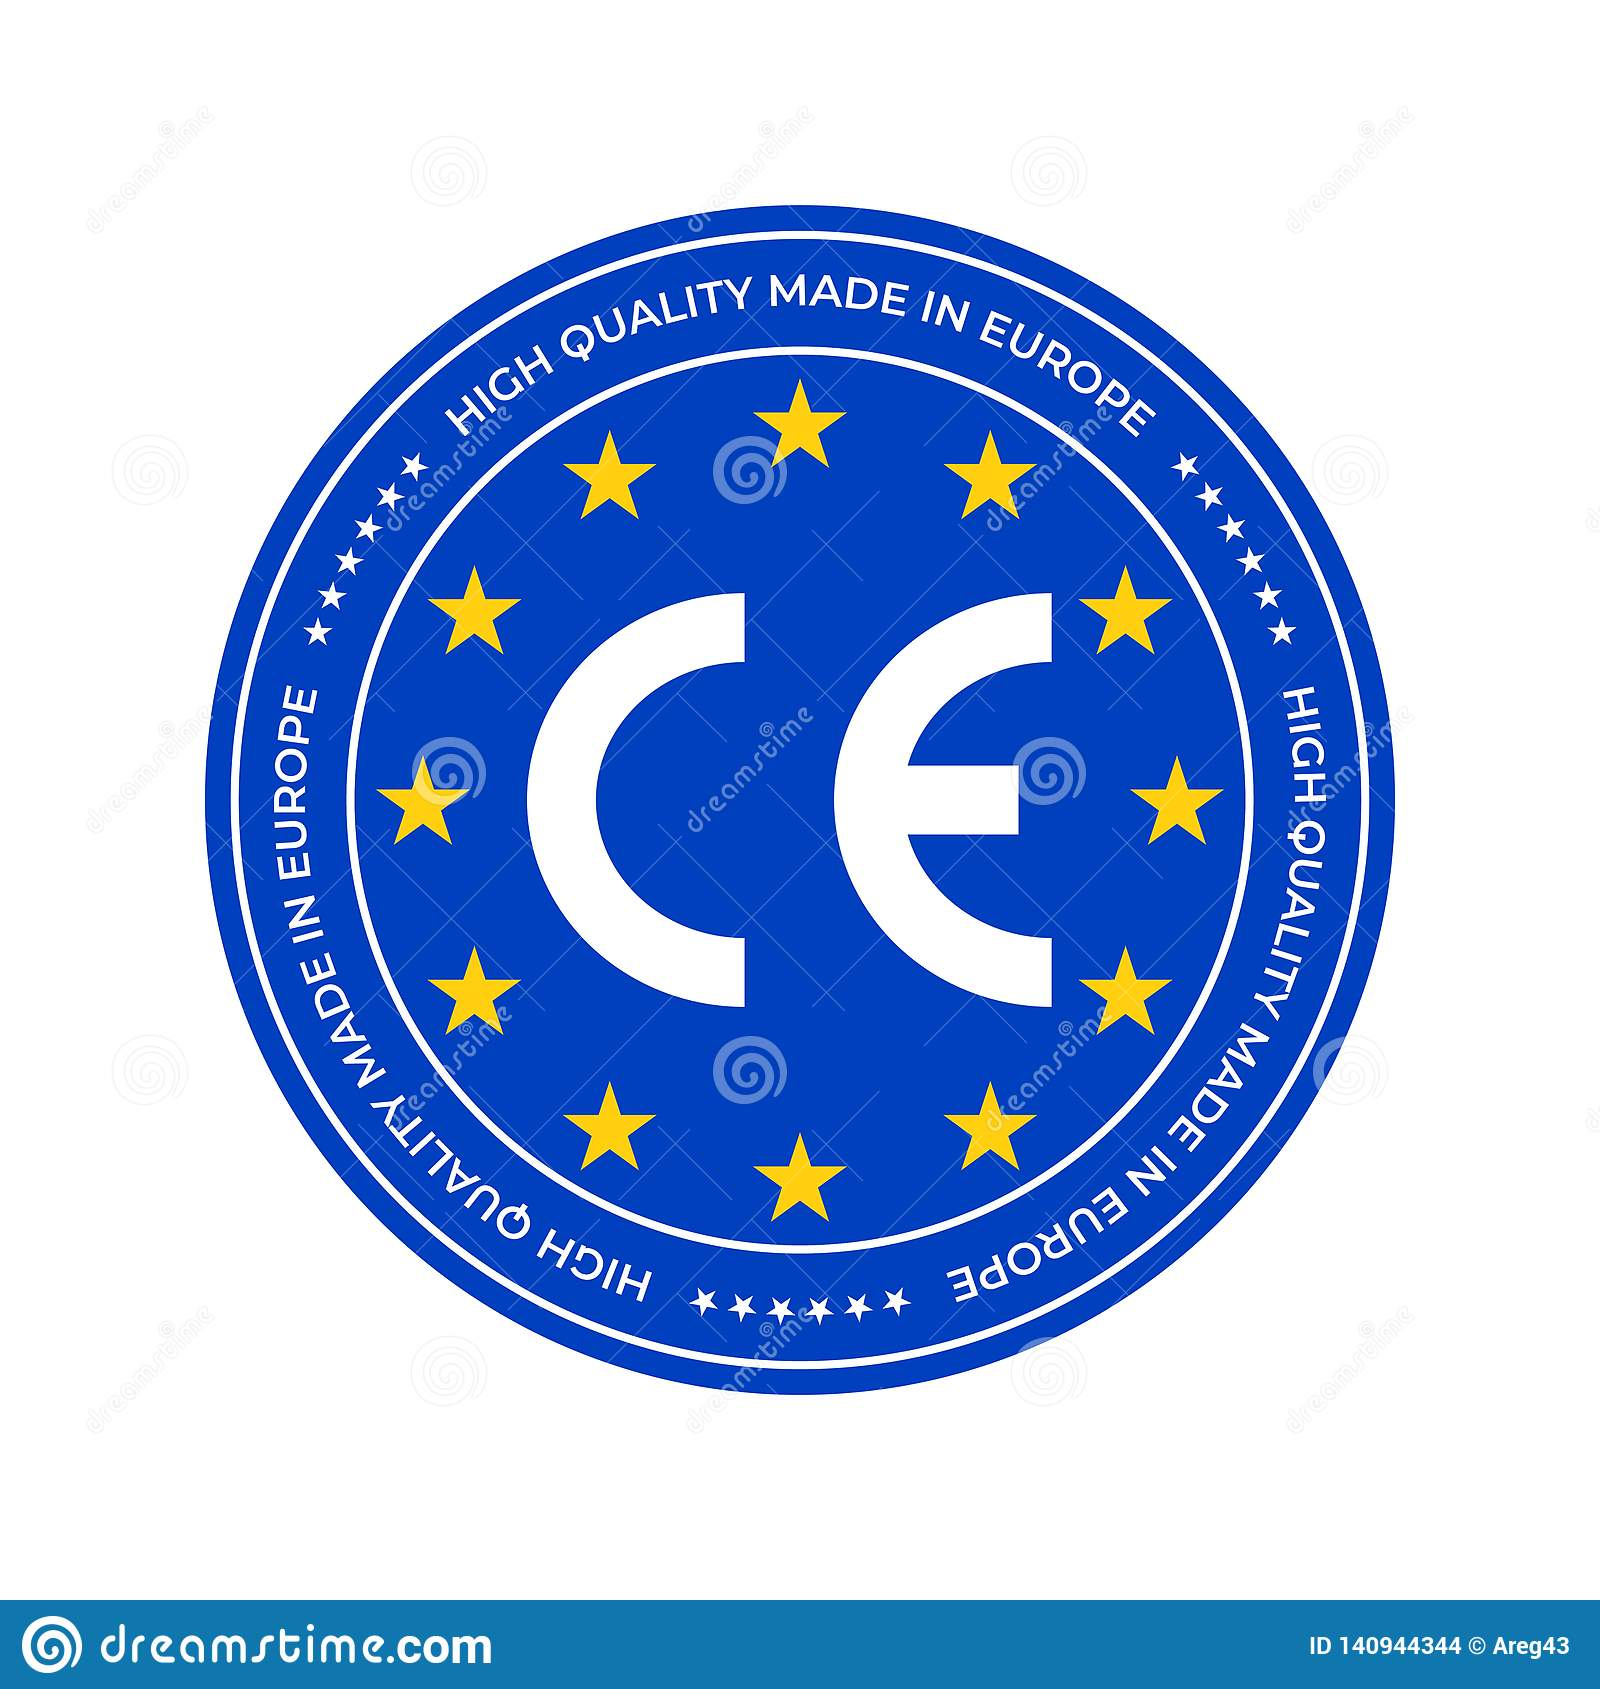 CE Marking Label Or European Conformity Certification Mark